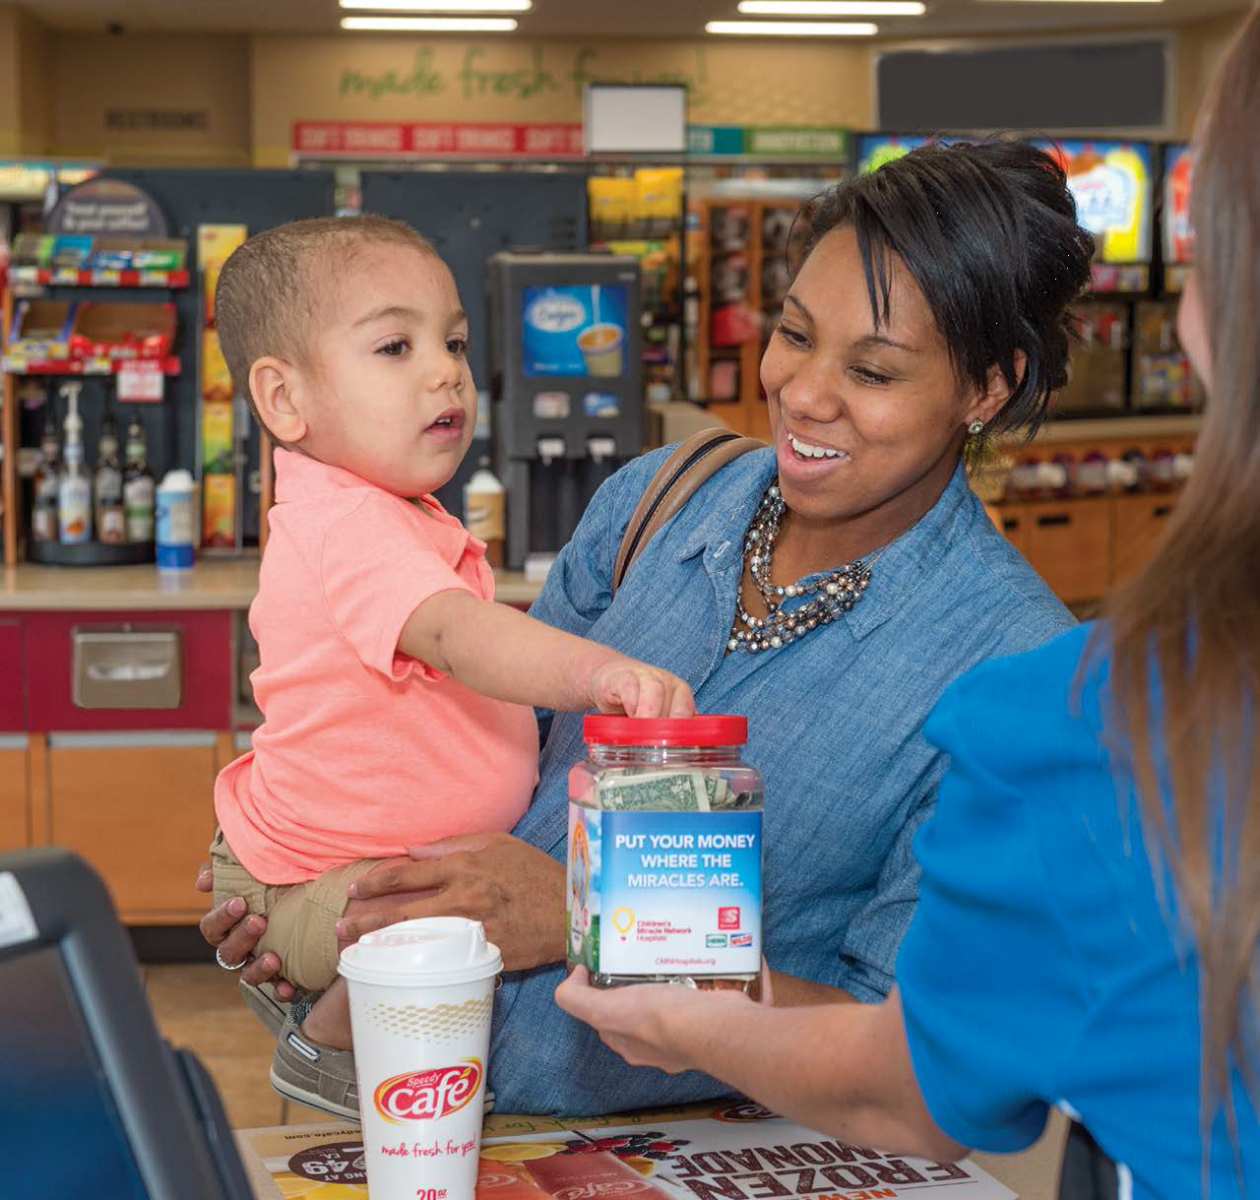 Two-year-old Dominic Corson puts his money where the miracles are by donating to Children's Miracle Network Hospitals at Speedway.